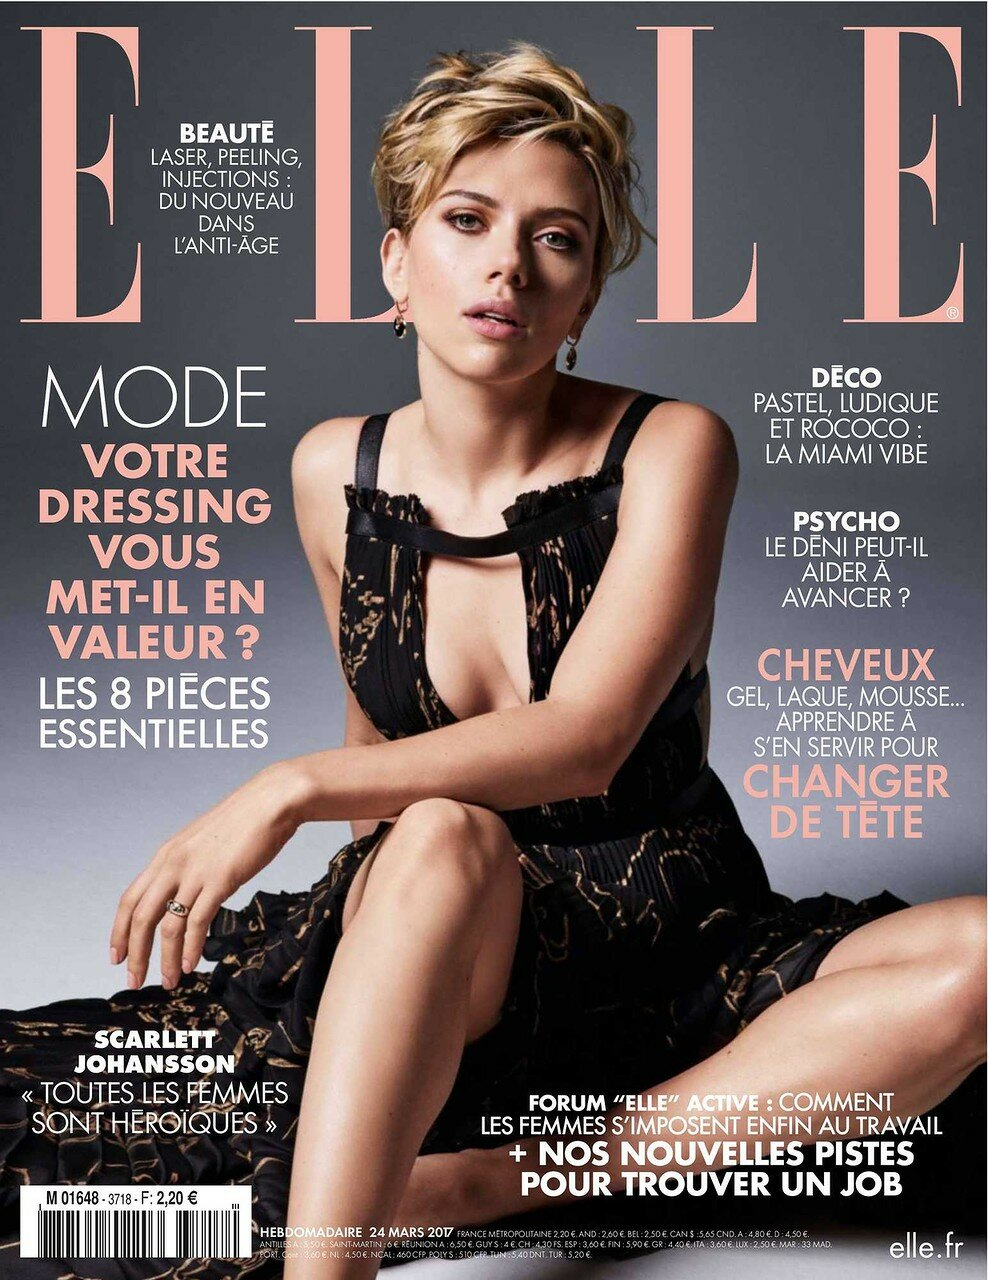 Scarlett-Johansson-Elle-France-March-2017-01.jpg